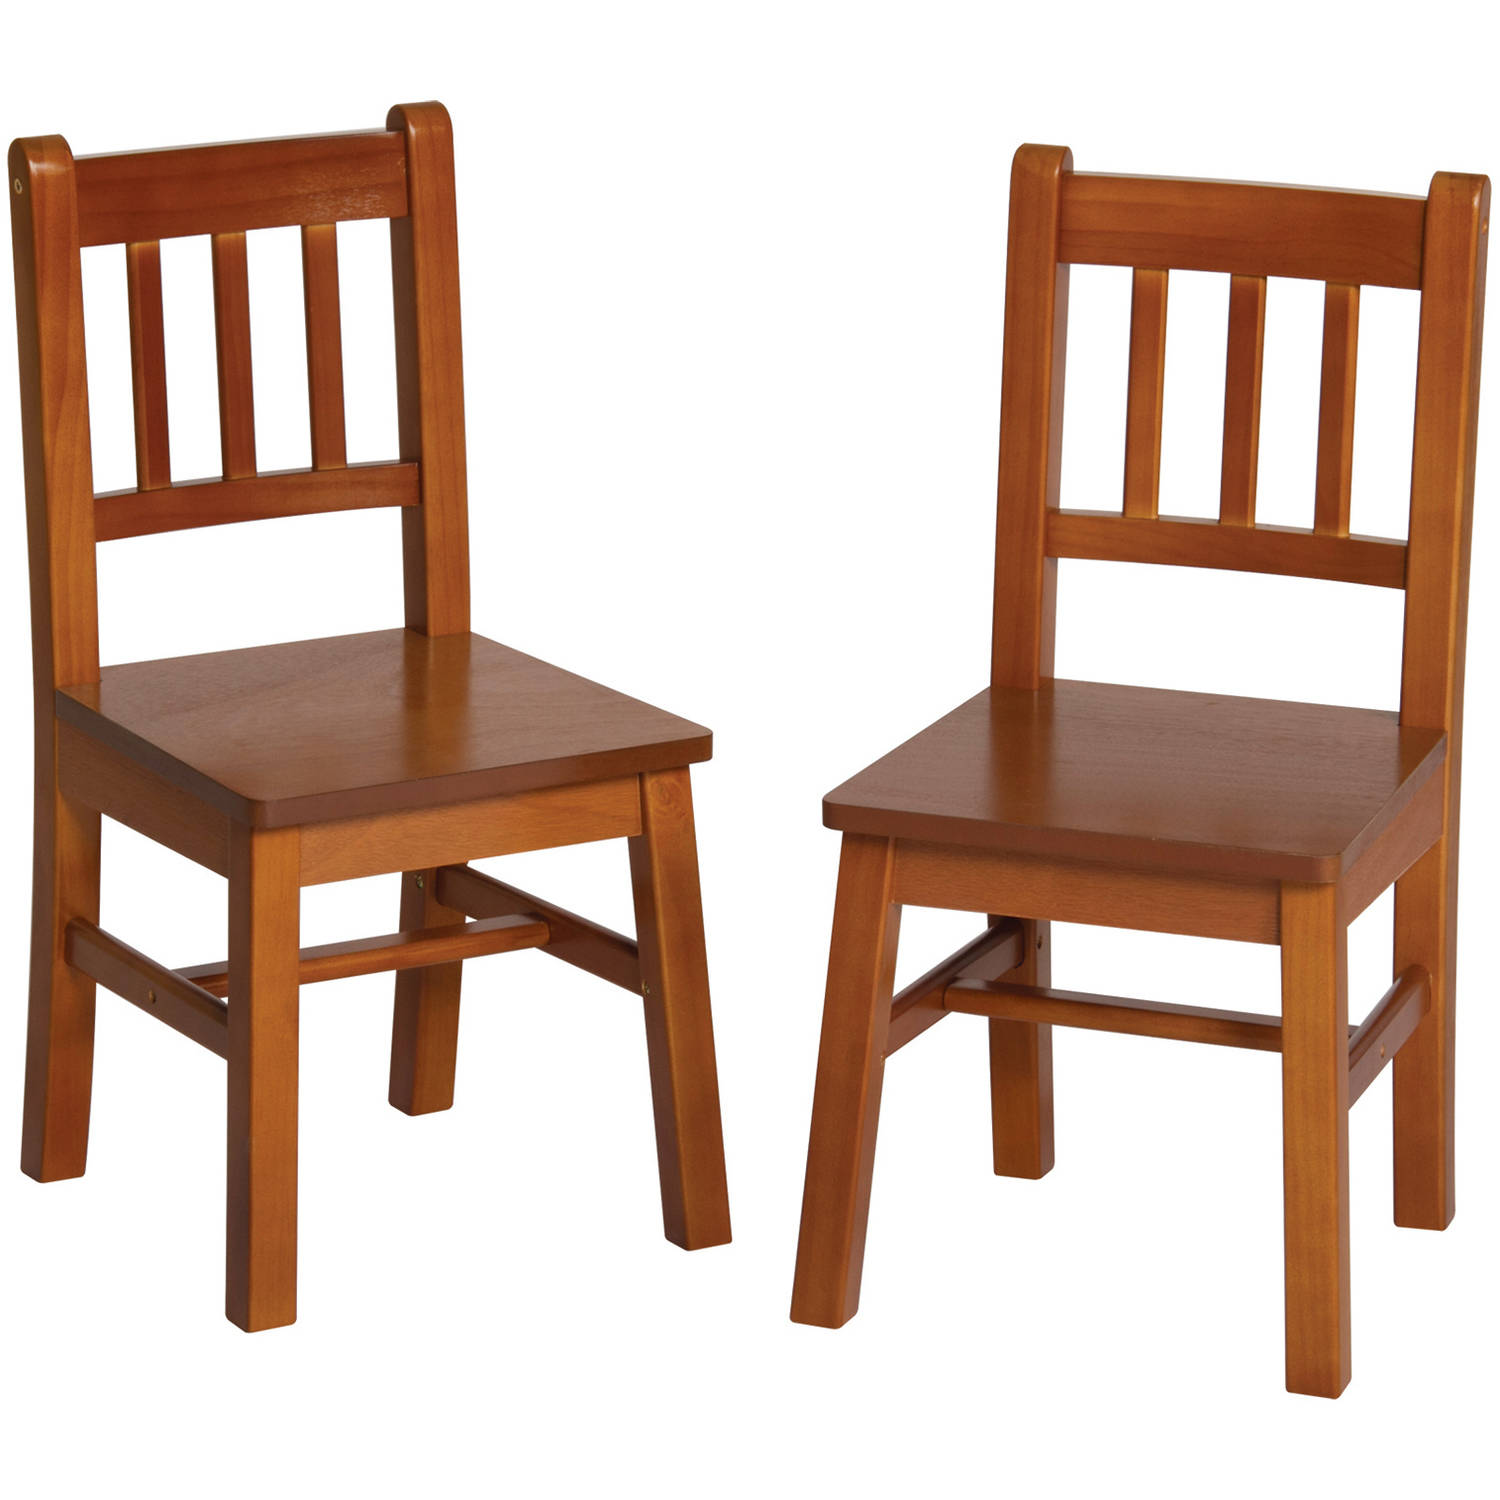 Guidecraft Mission Extra Chairs, Natural